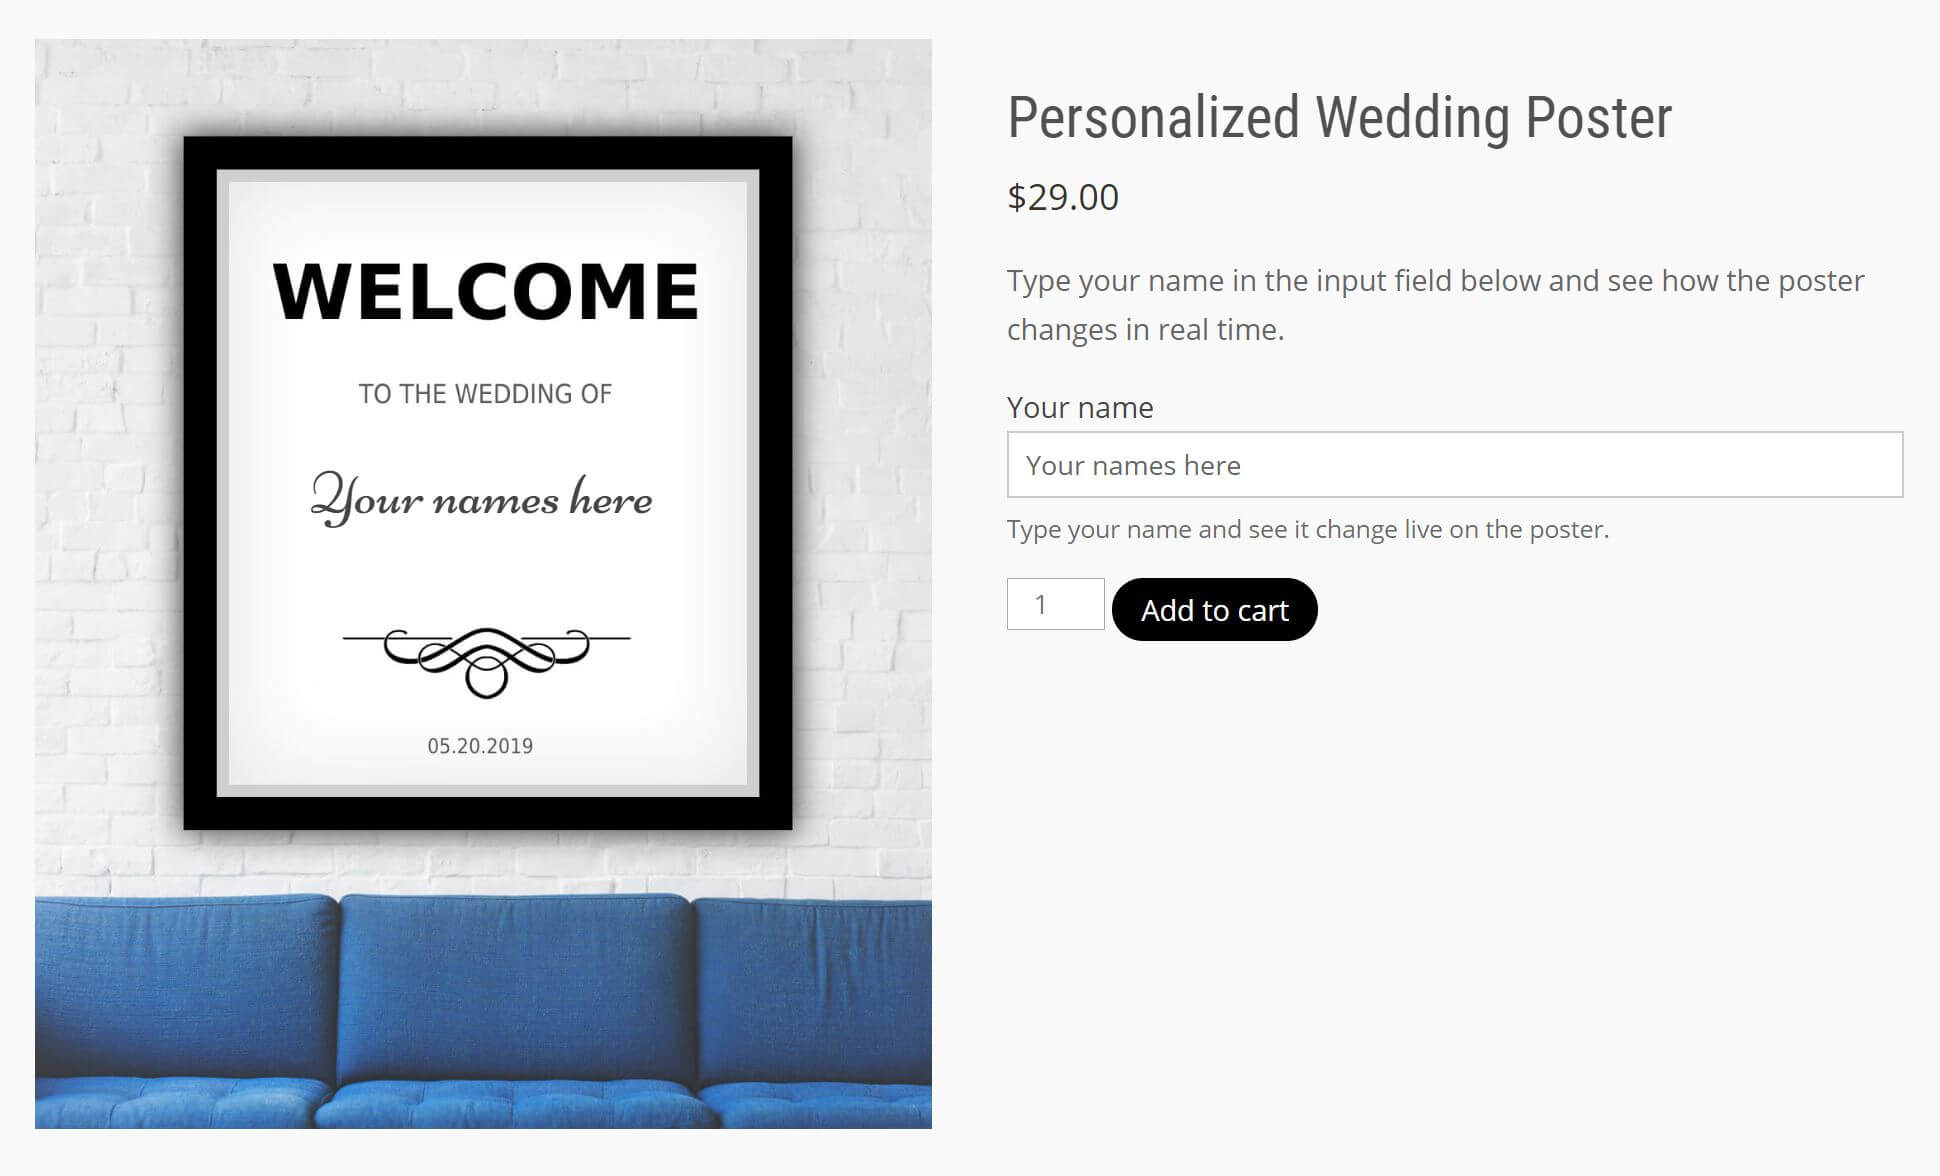 A wedding poster you can personalize